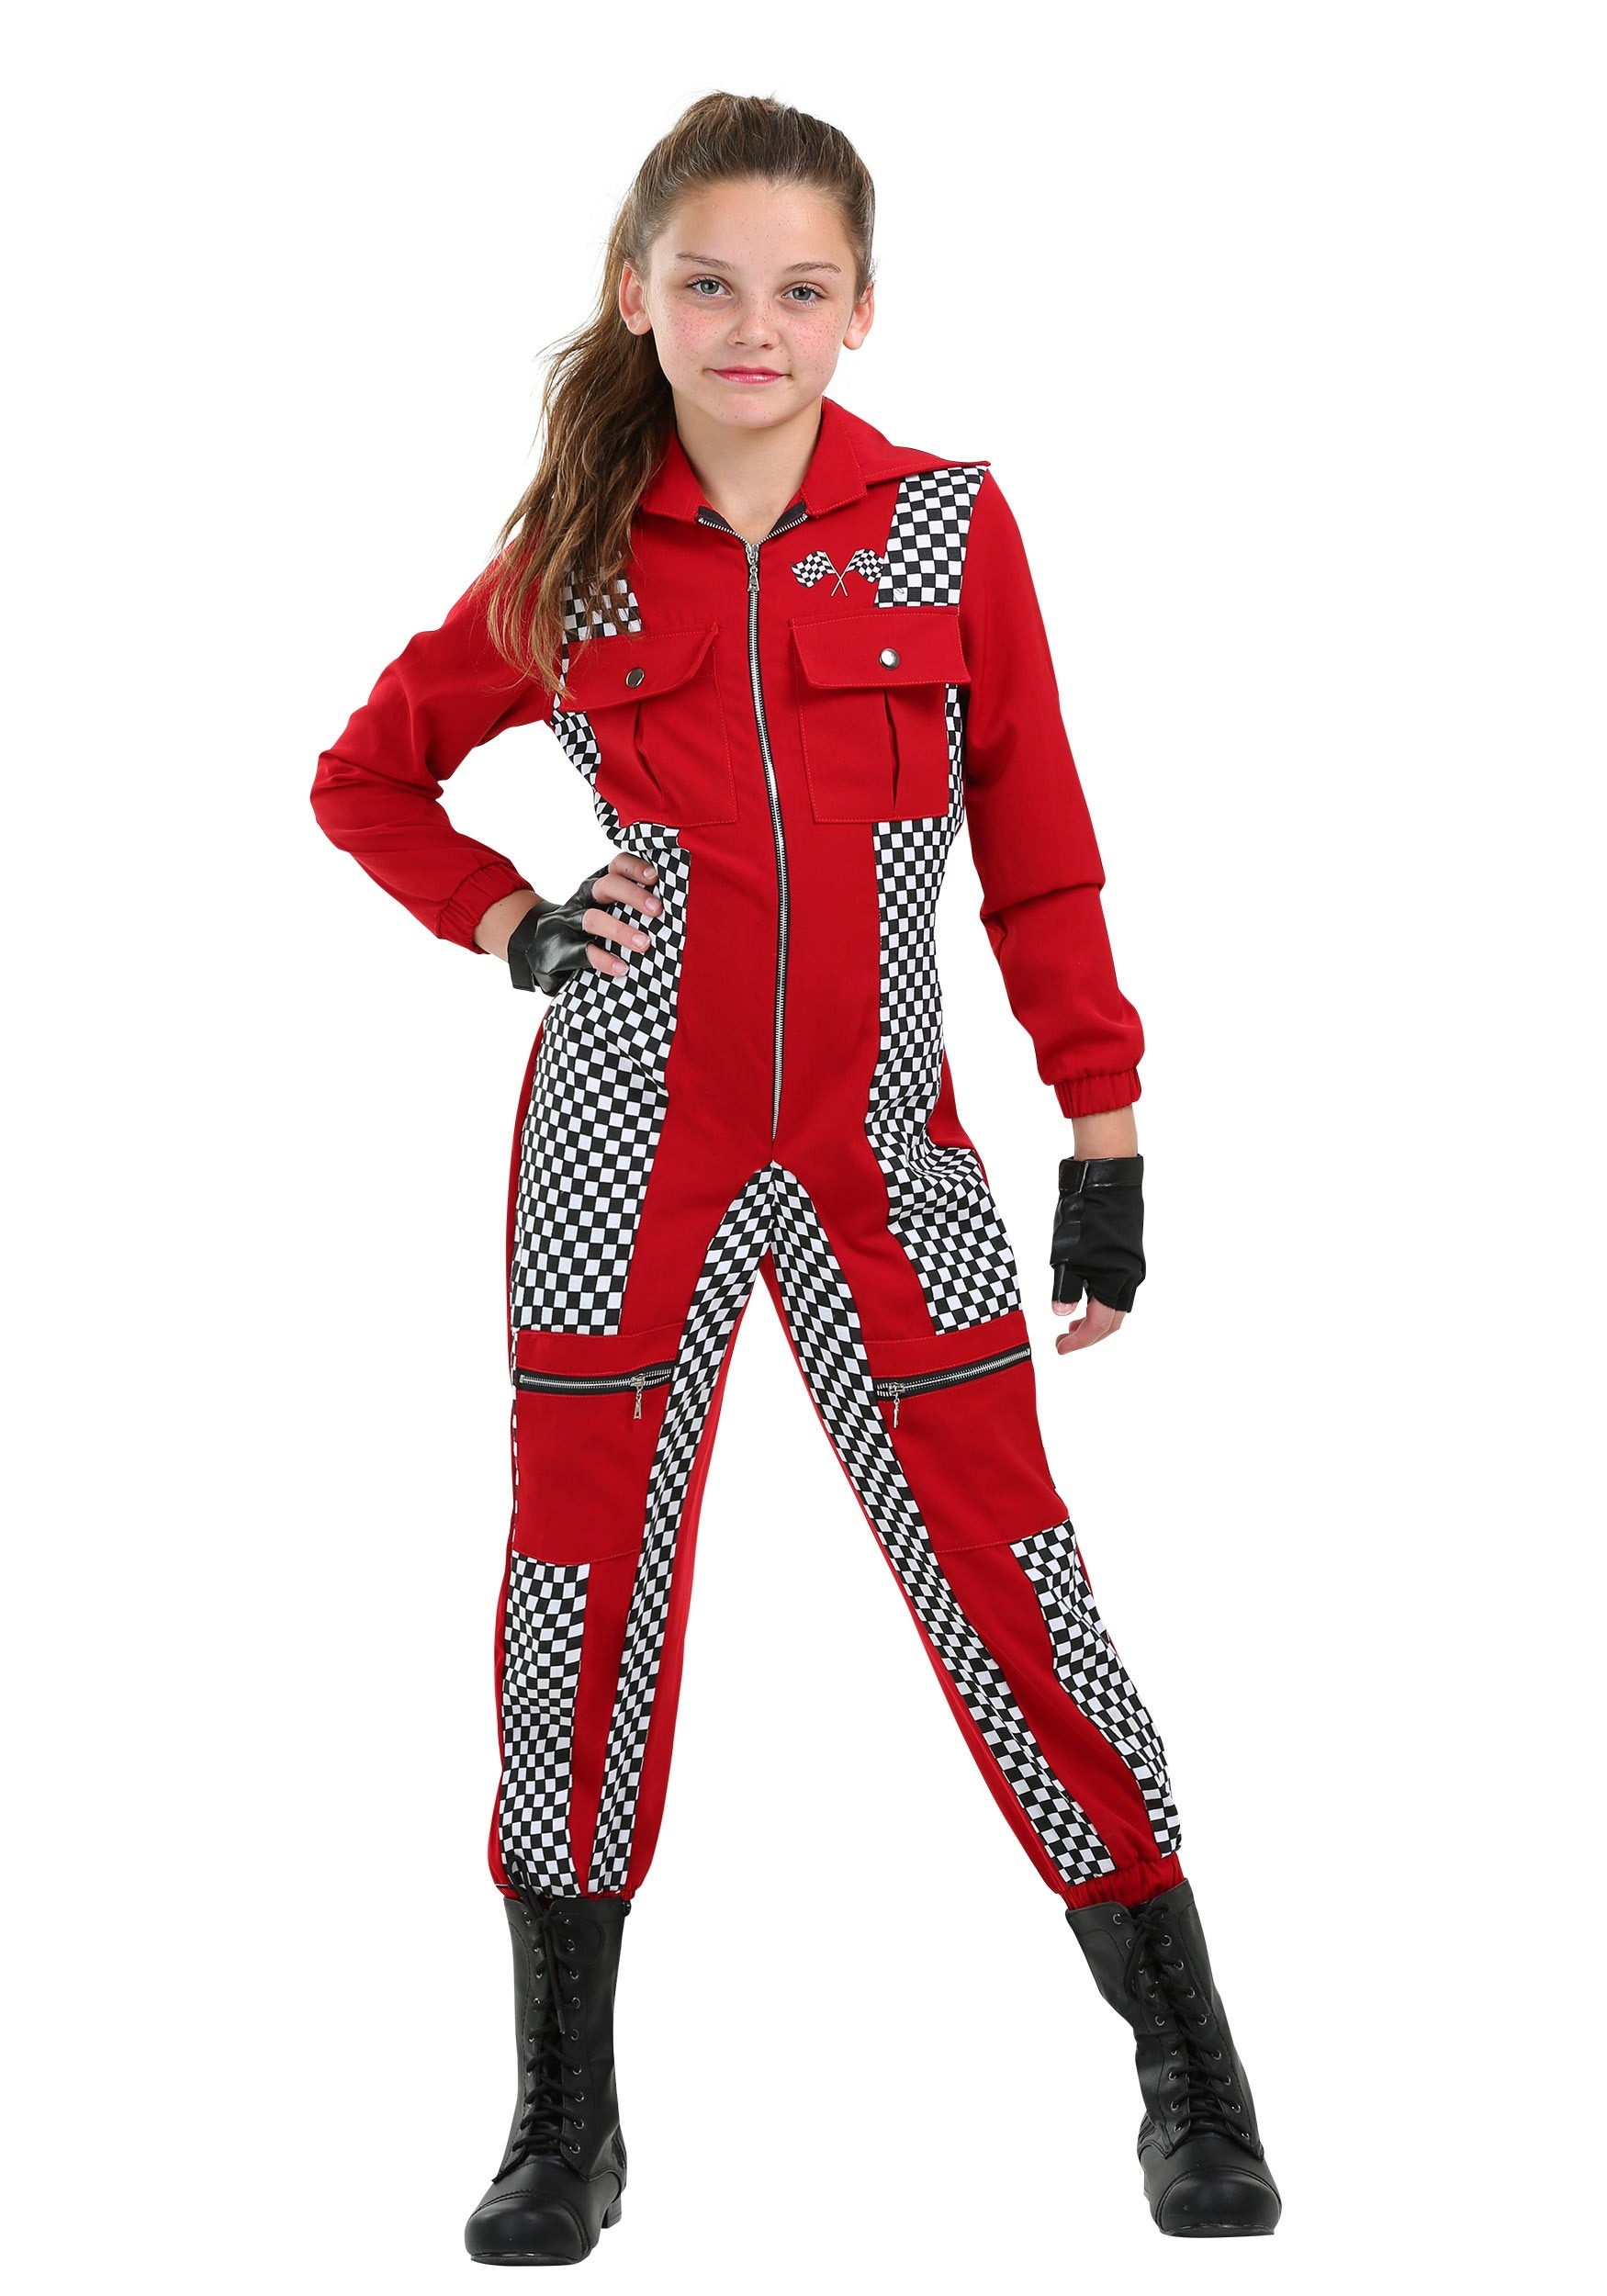 Racer Jumpsuit Costume for Girls